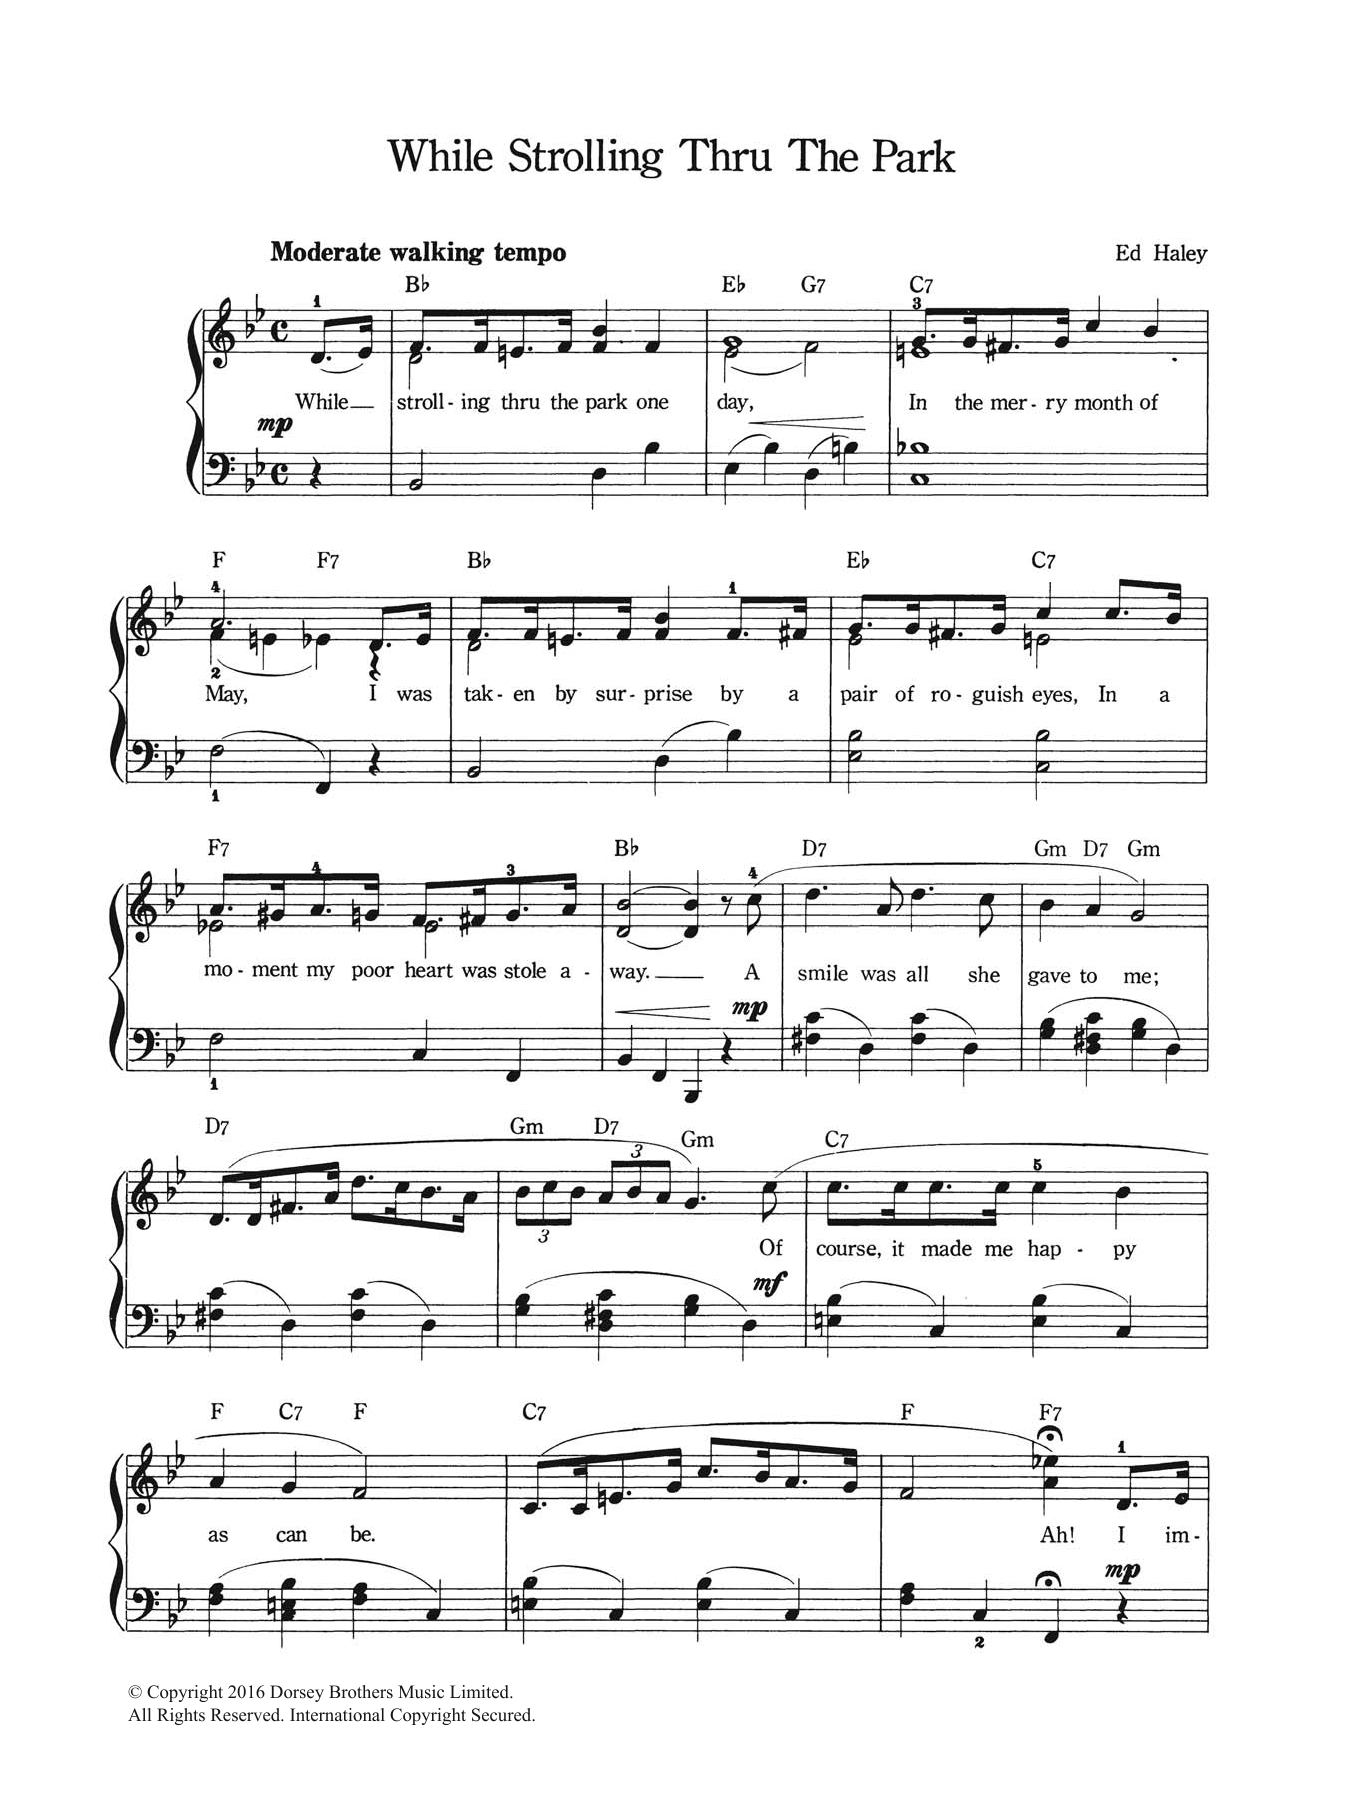 While Strolling Through The Park One Day Sheet Music